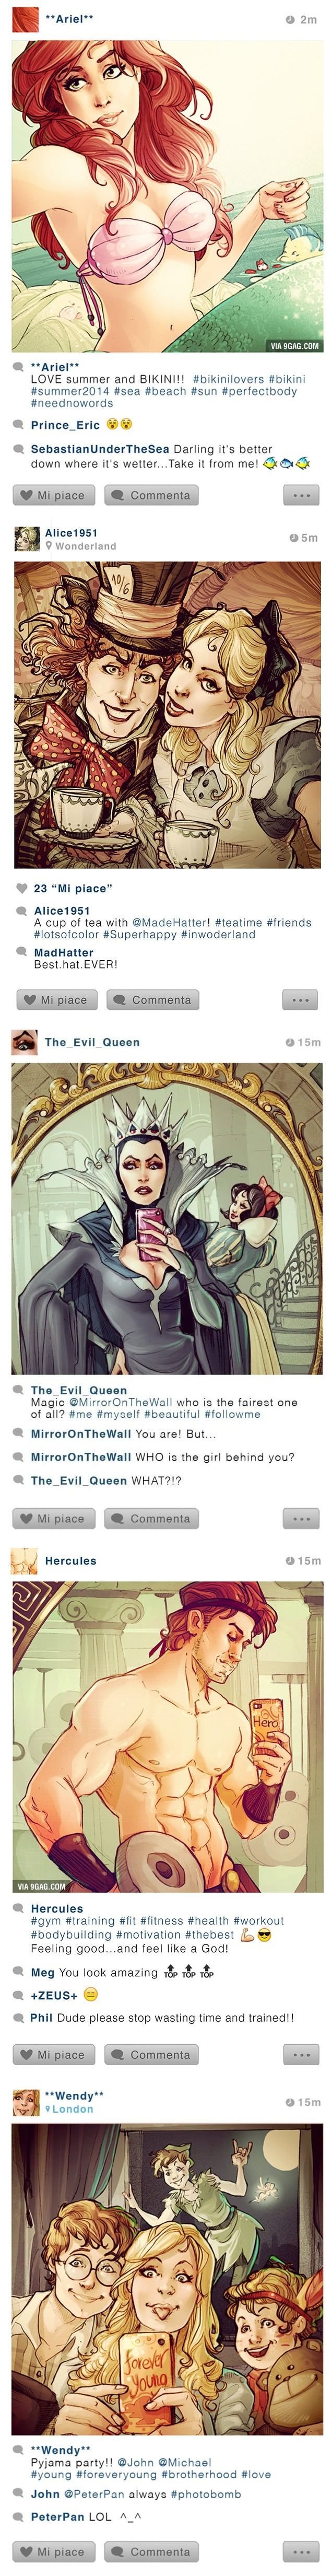 If Disney characters were on Instagram...